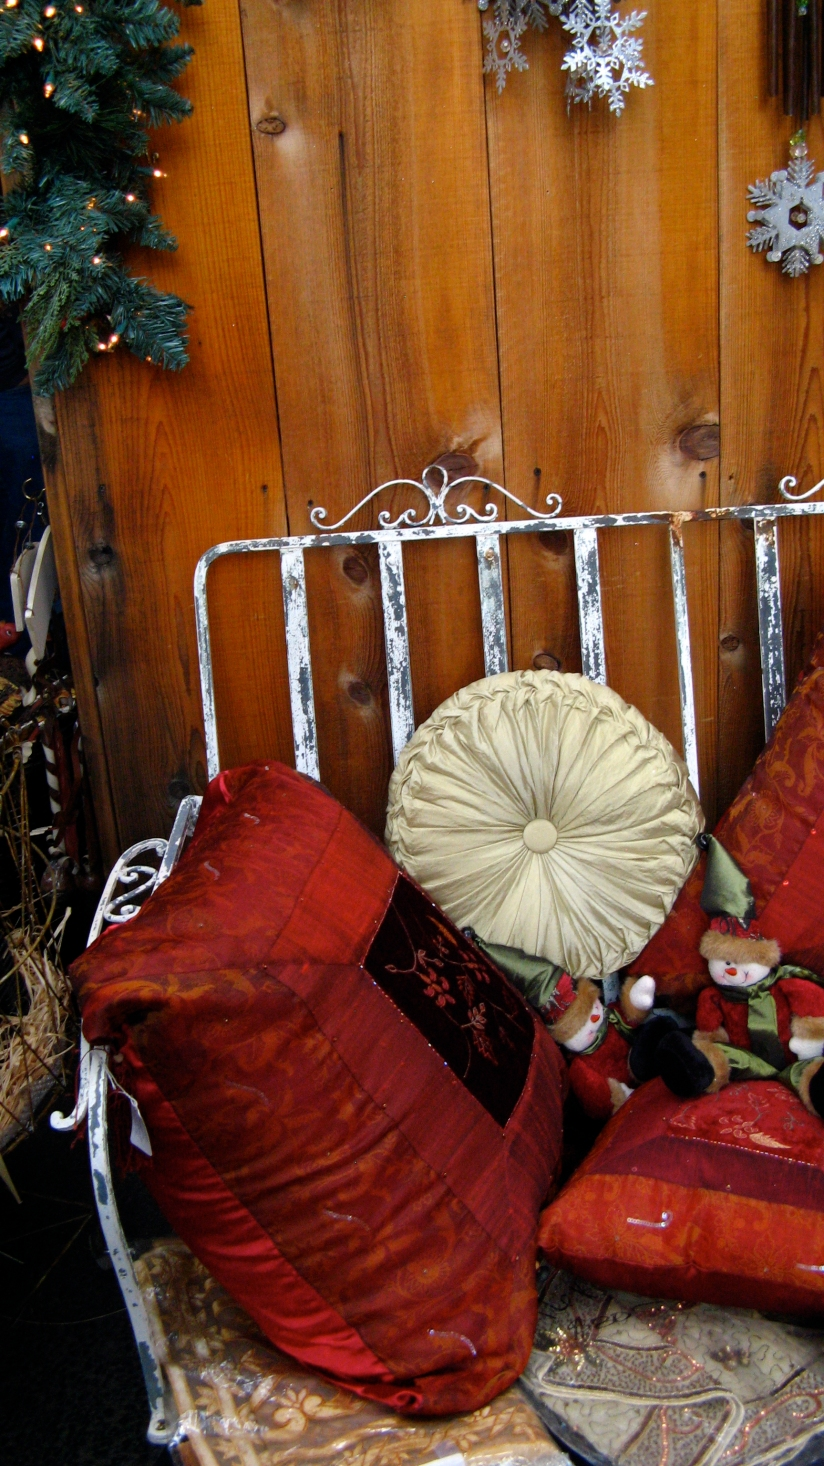 embroidered christmas pillows on patina'd metal bench against wooden wall at apple hill in camino california